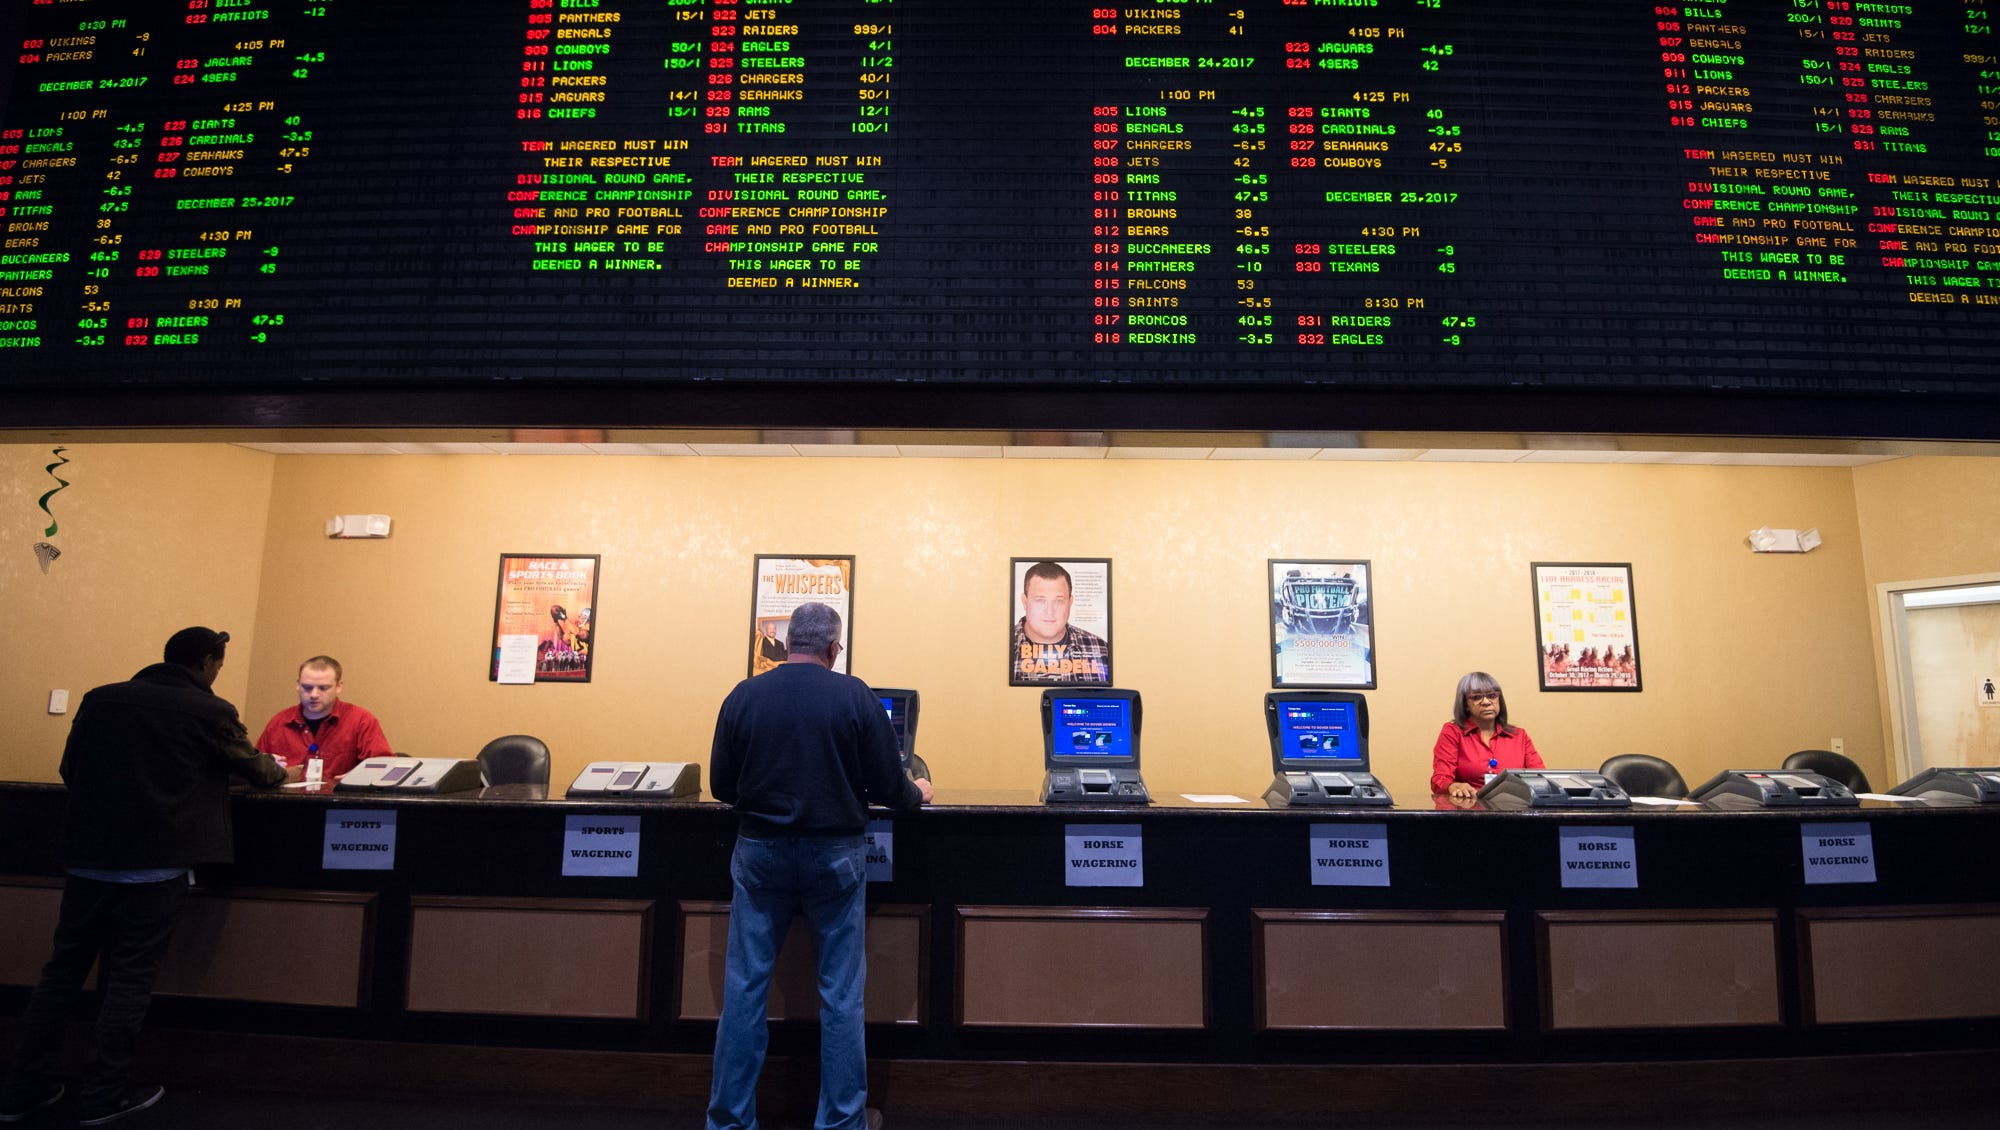 History of sports betting in delaware paddy power uk betting shops online